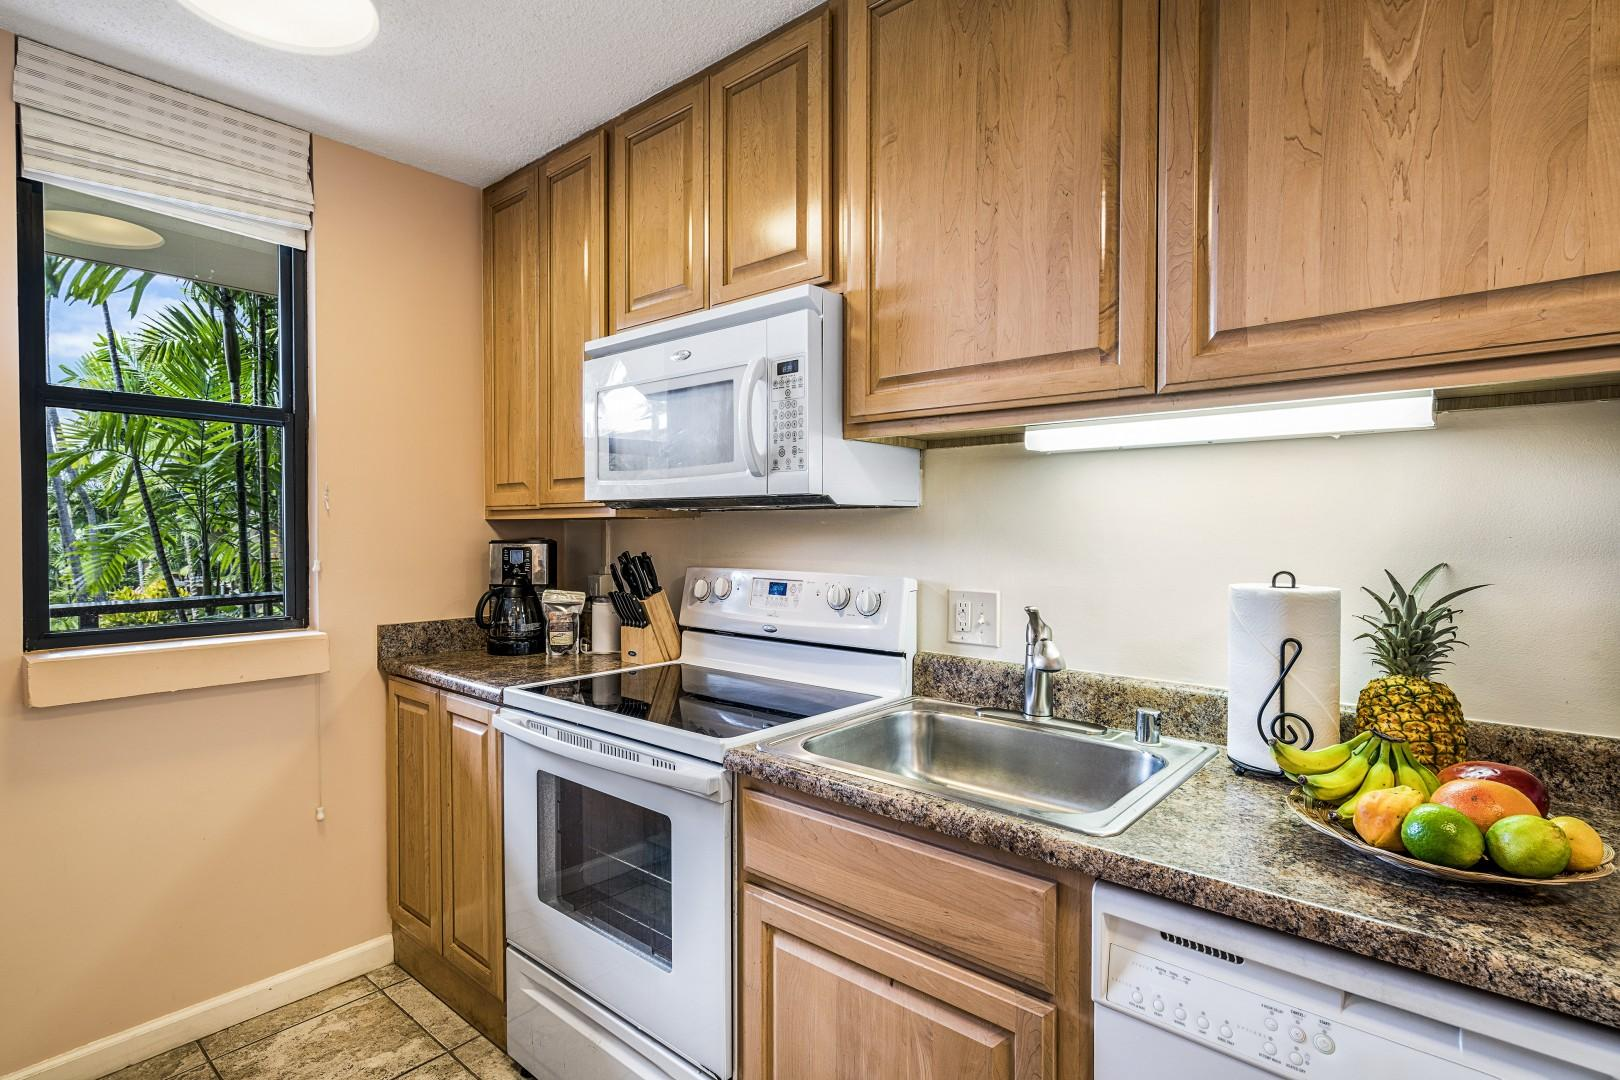 Upgraded kitchen with all the amenities you'll need.